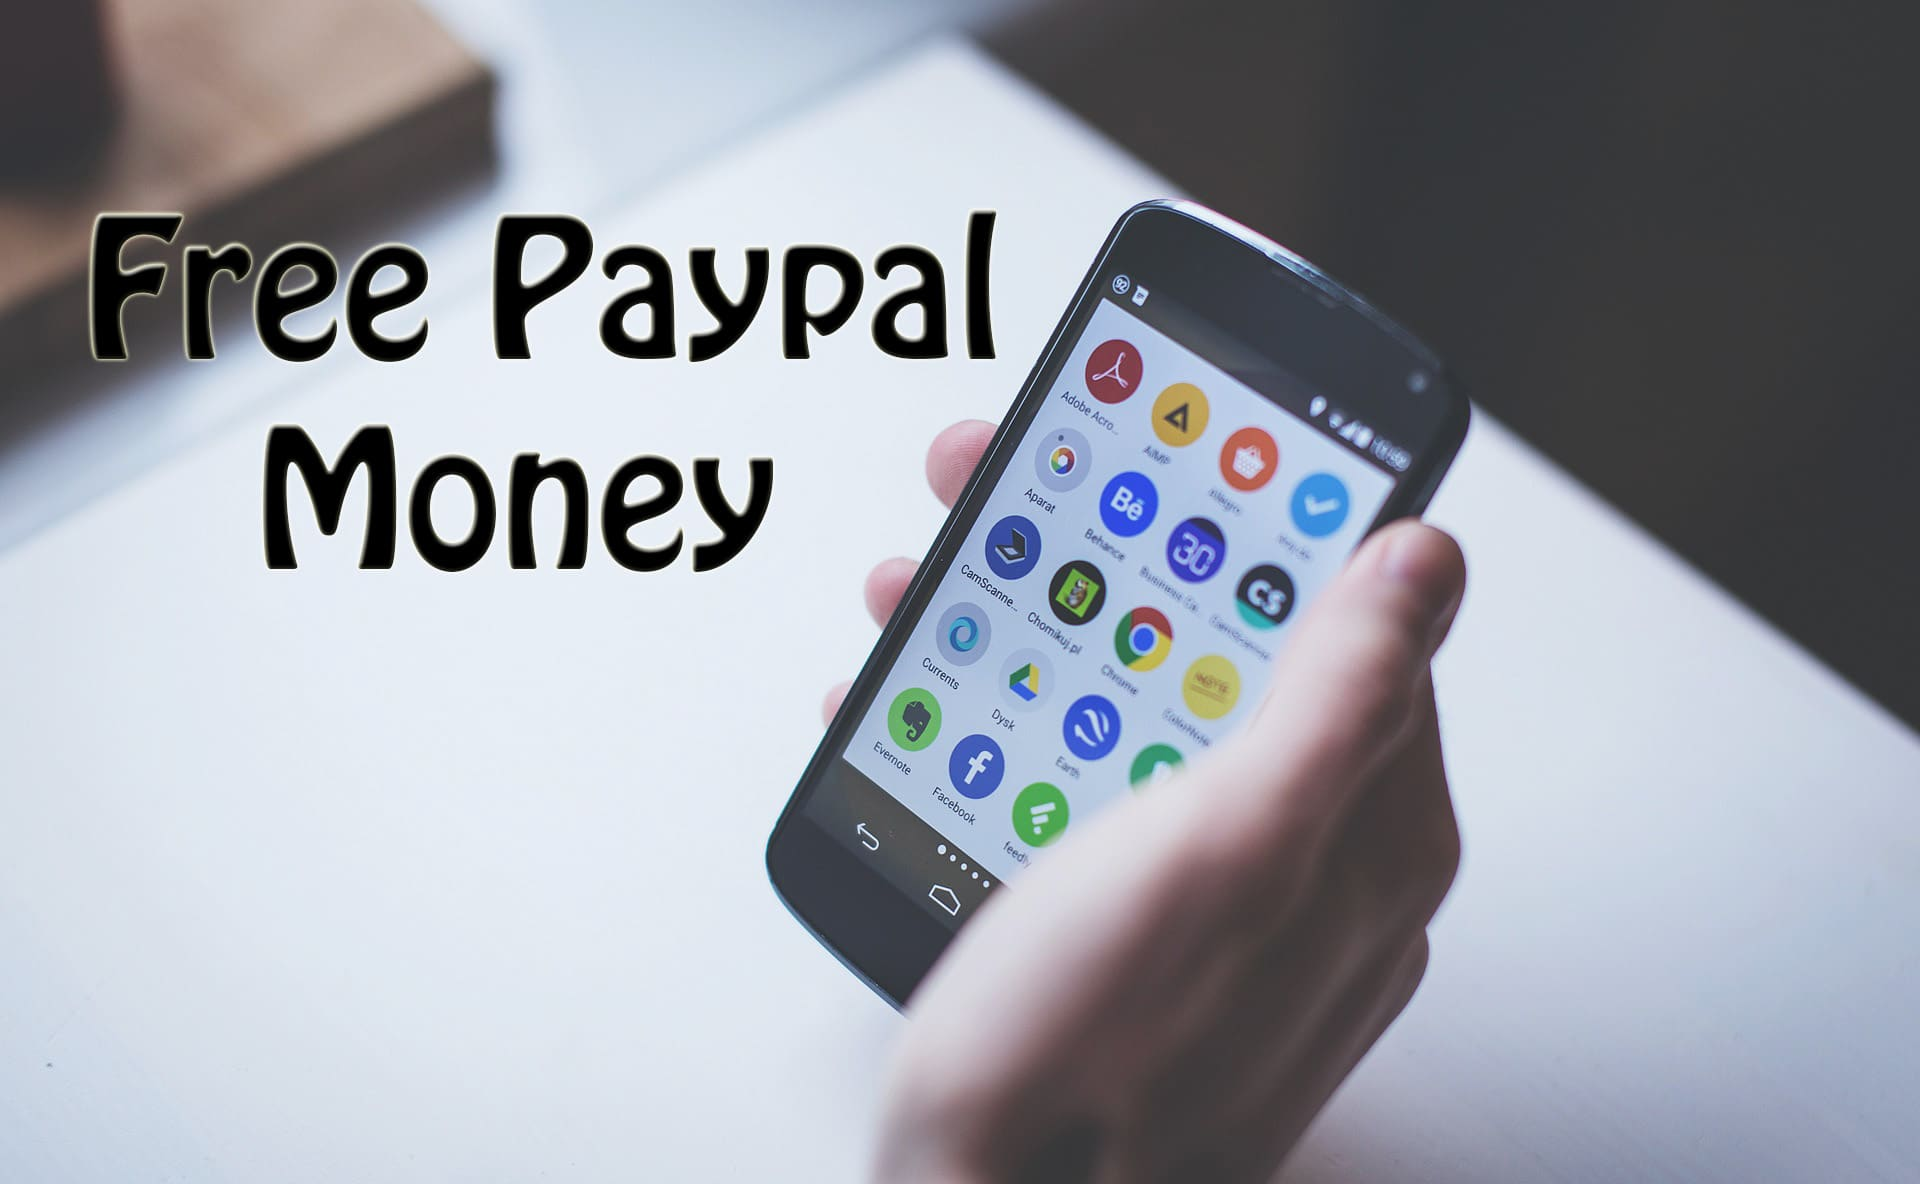 5 Best Android Apps To Earn Free Paypal Money - Trick Xpert